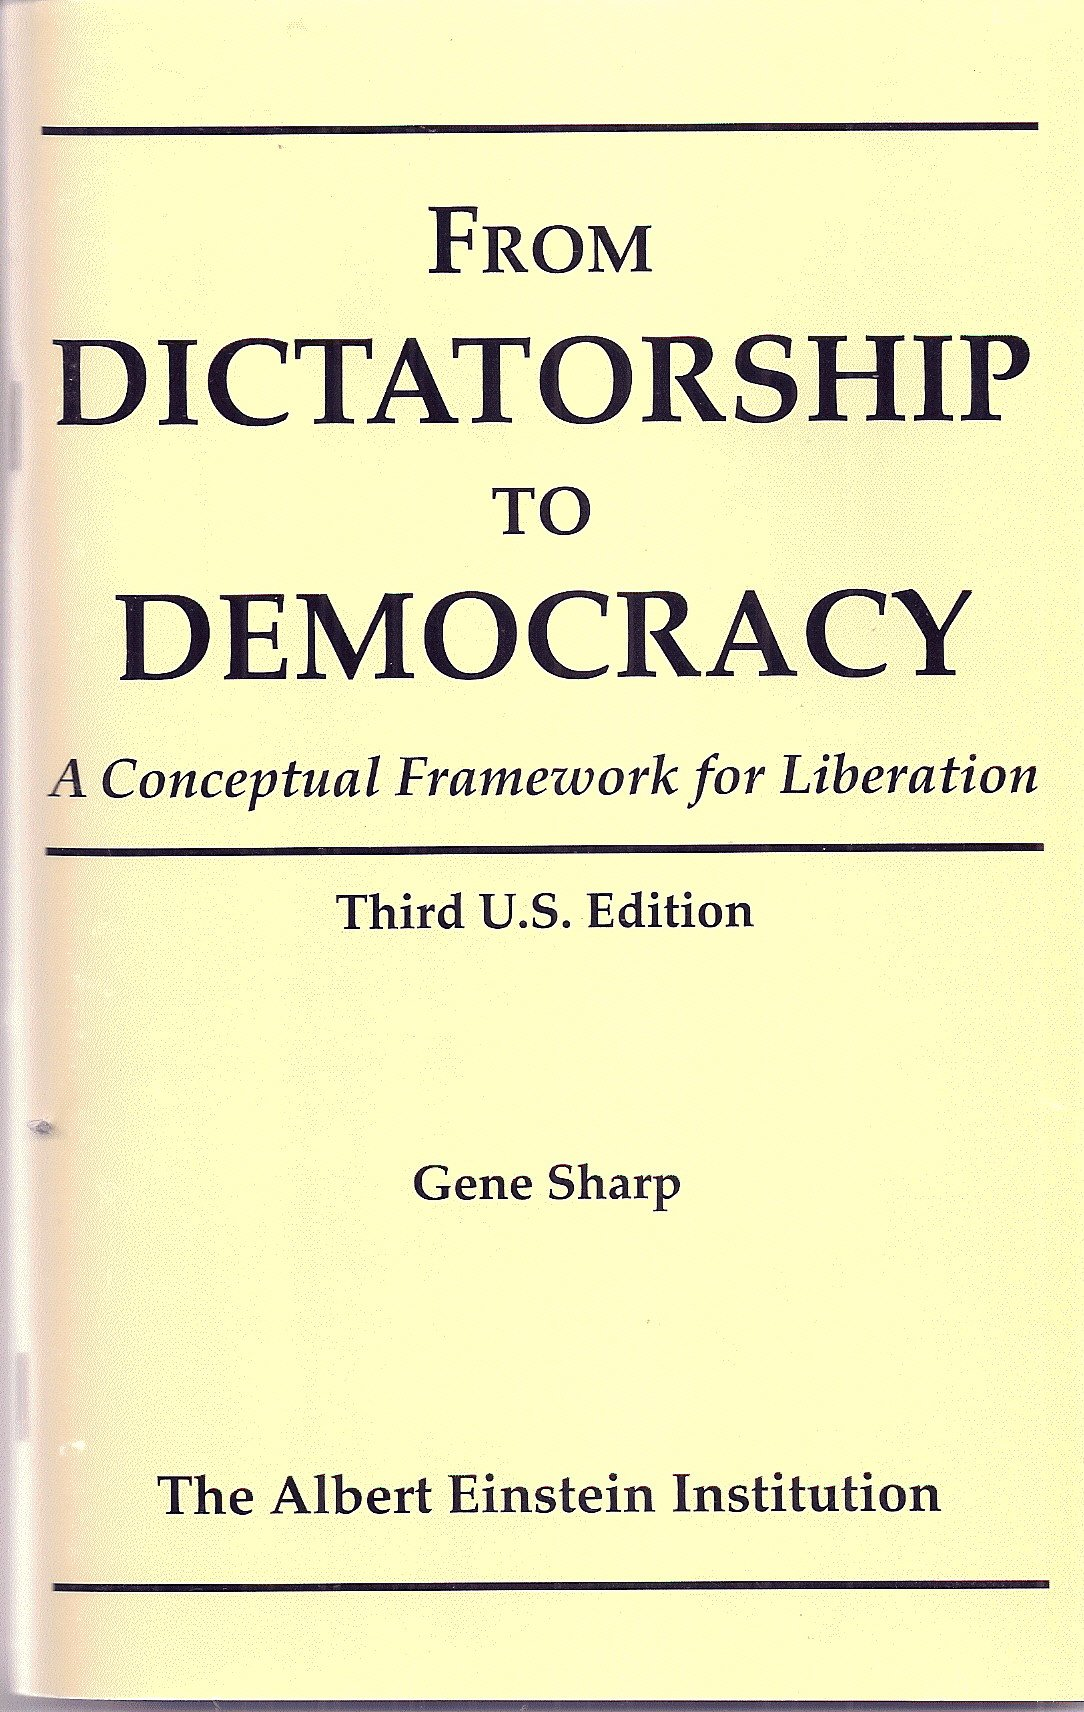 from dictatorship to democracy a conceptual framework for from dictatorship to democracy a conceptual framework for liberation gene sharp 9781880813096 amazon com books